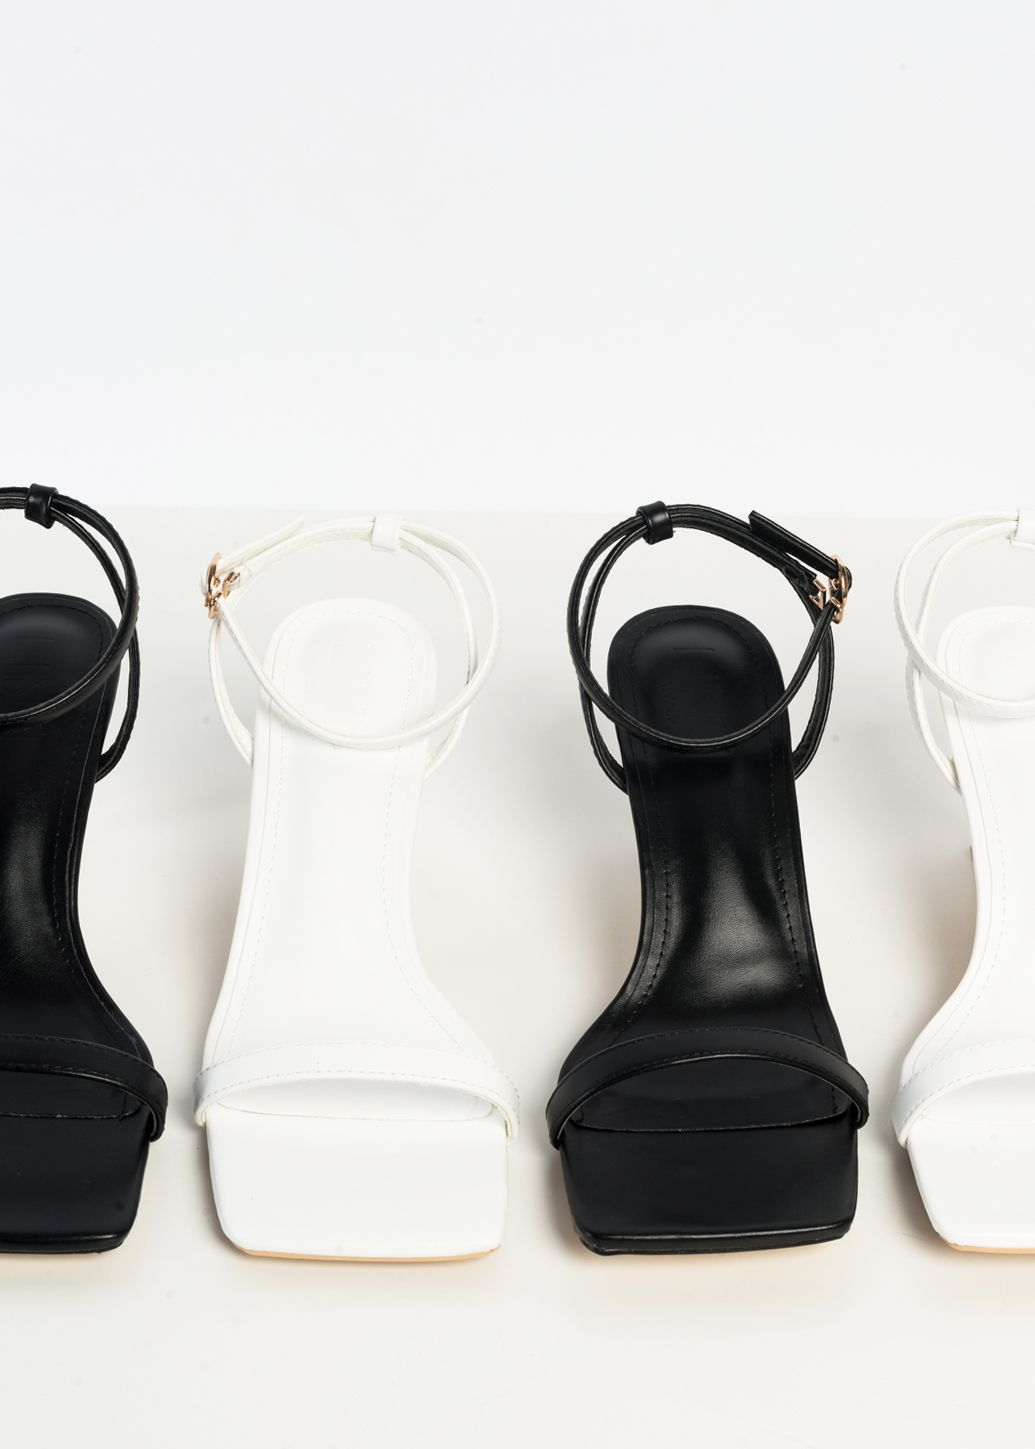 HIGH-HEEL SANDALS MIT SQUARE TOES